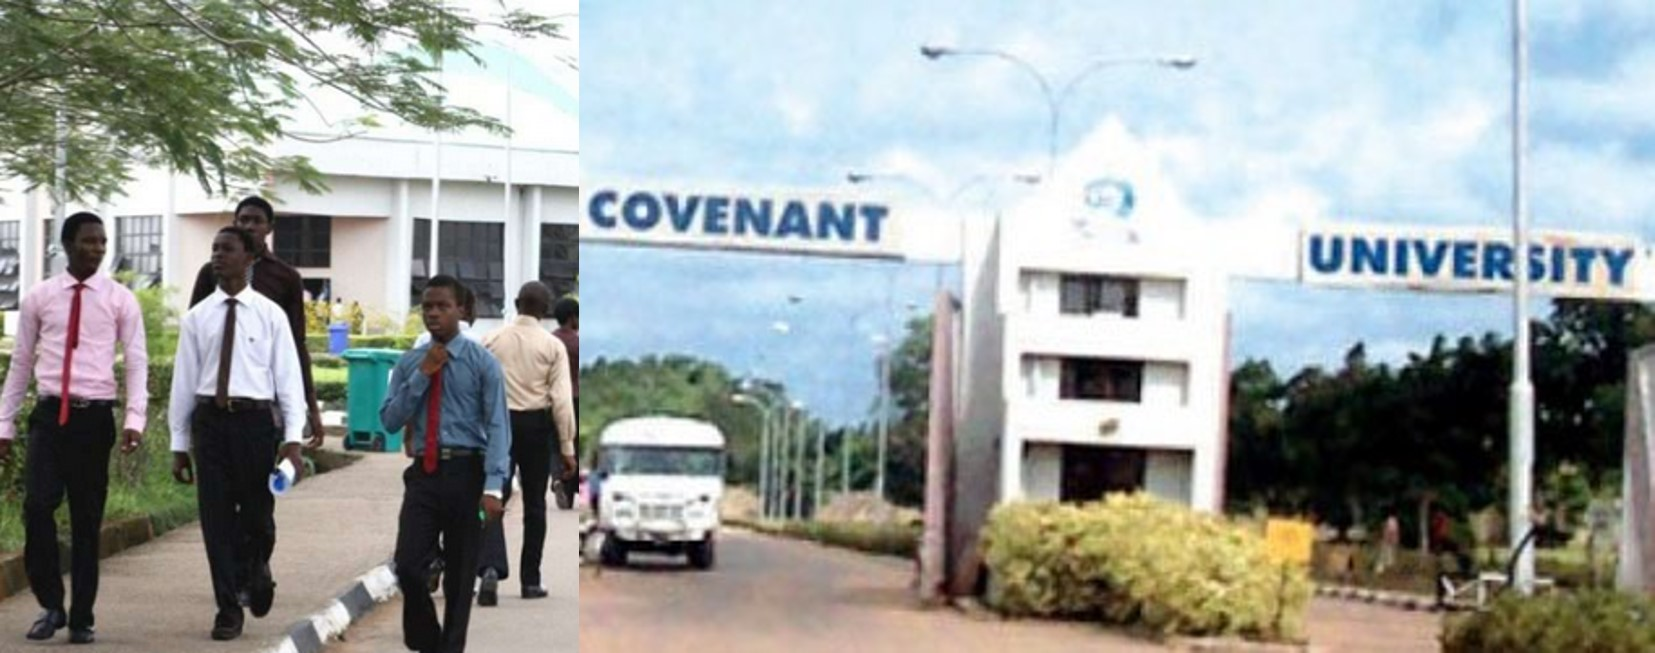 See The List of Prohibited Items in Covenant University